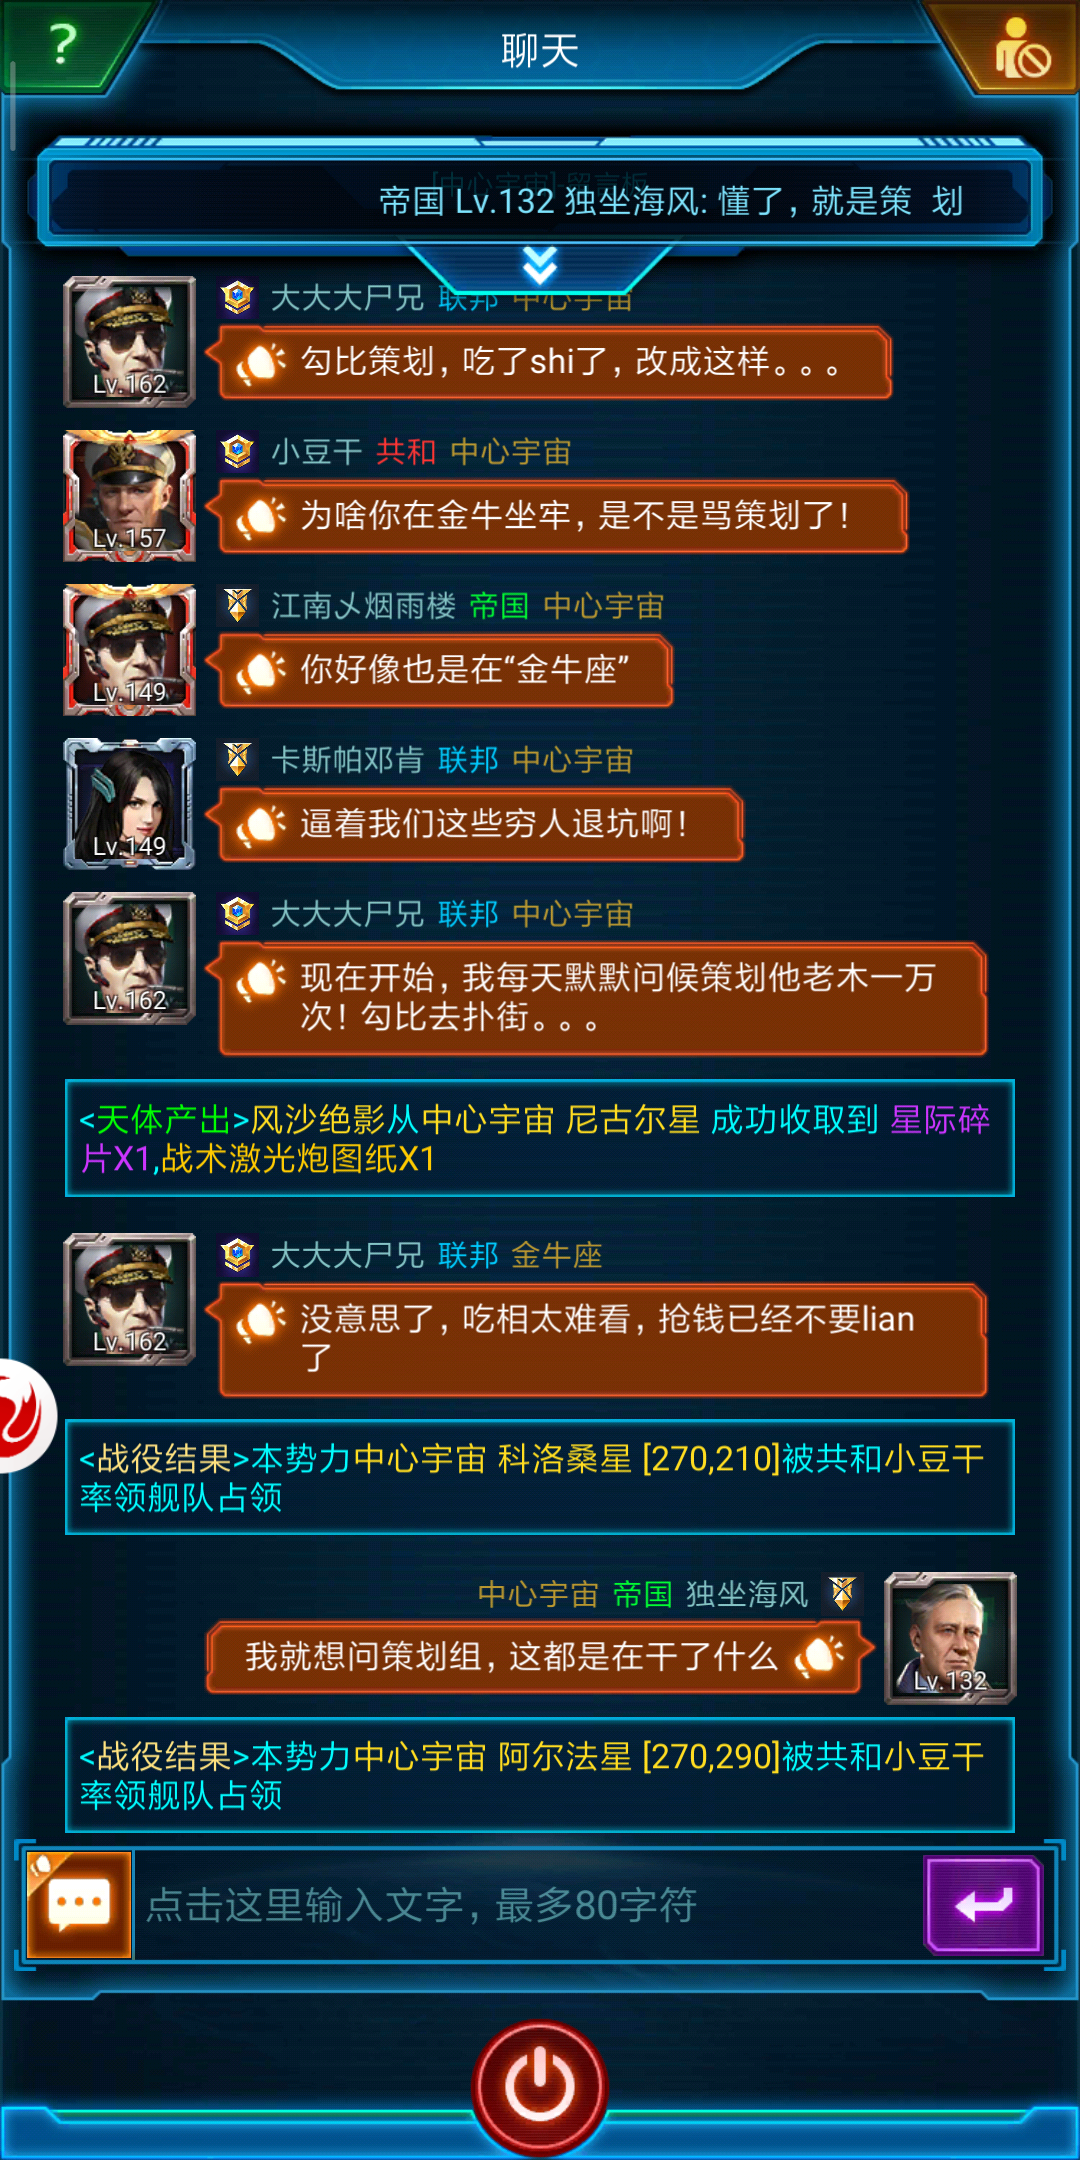 Screenshot_2019-08-01-11-11-08-477_com.jedigames.p16s.luobo.png